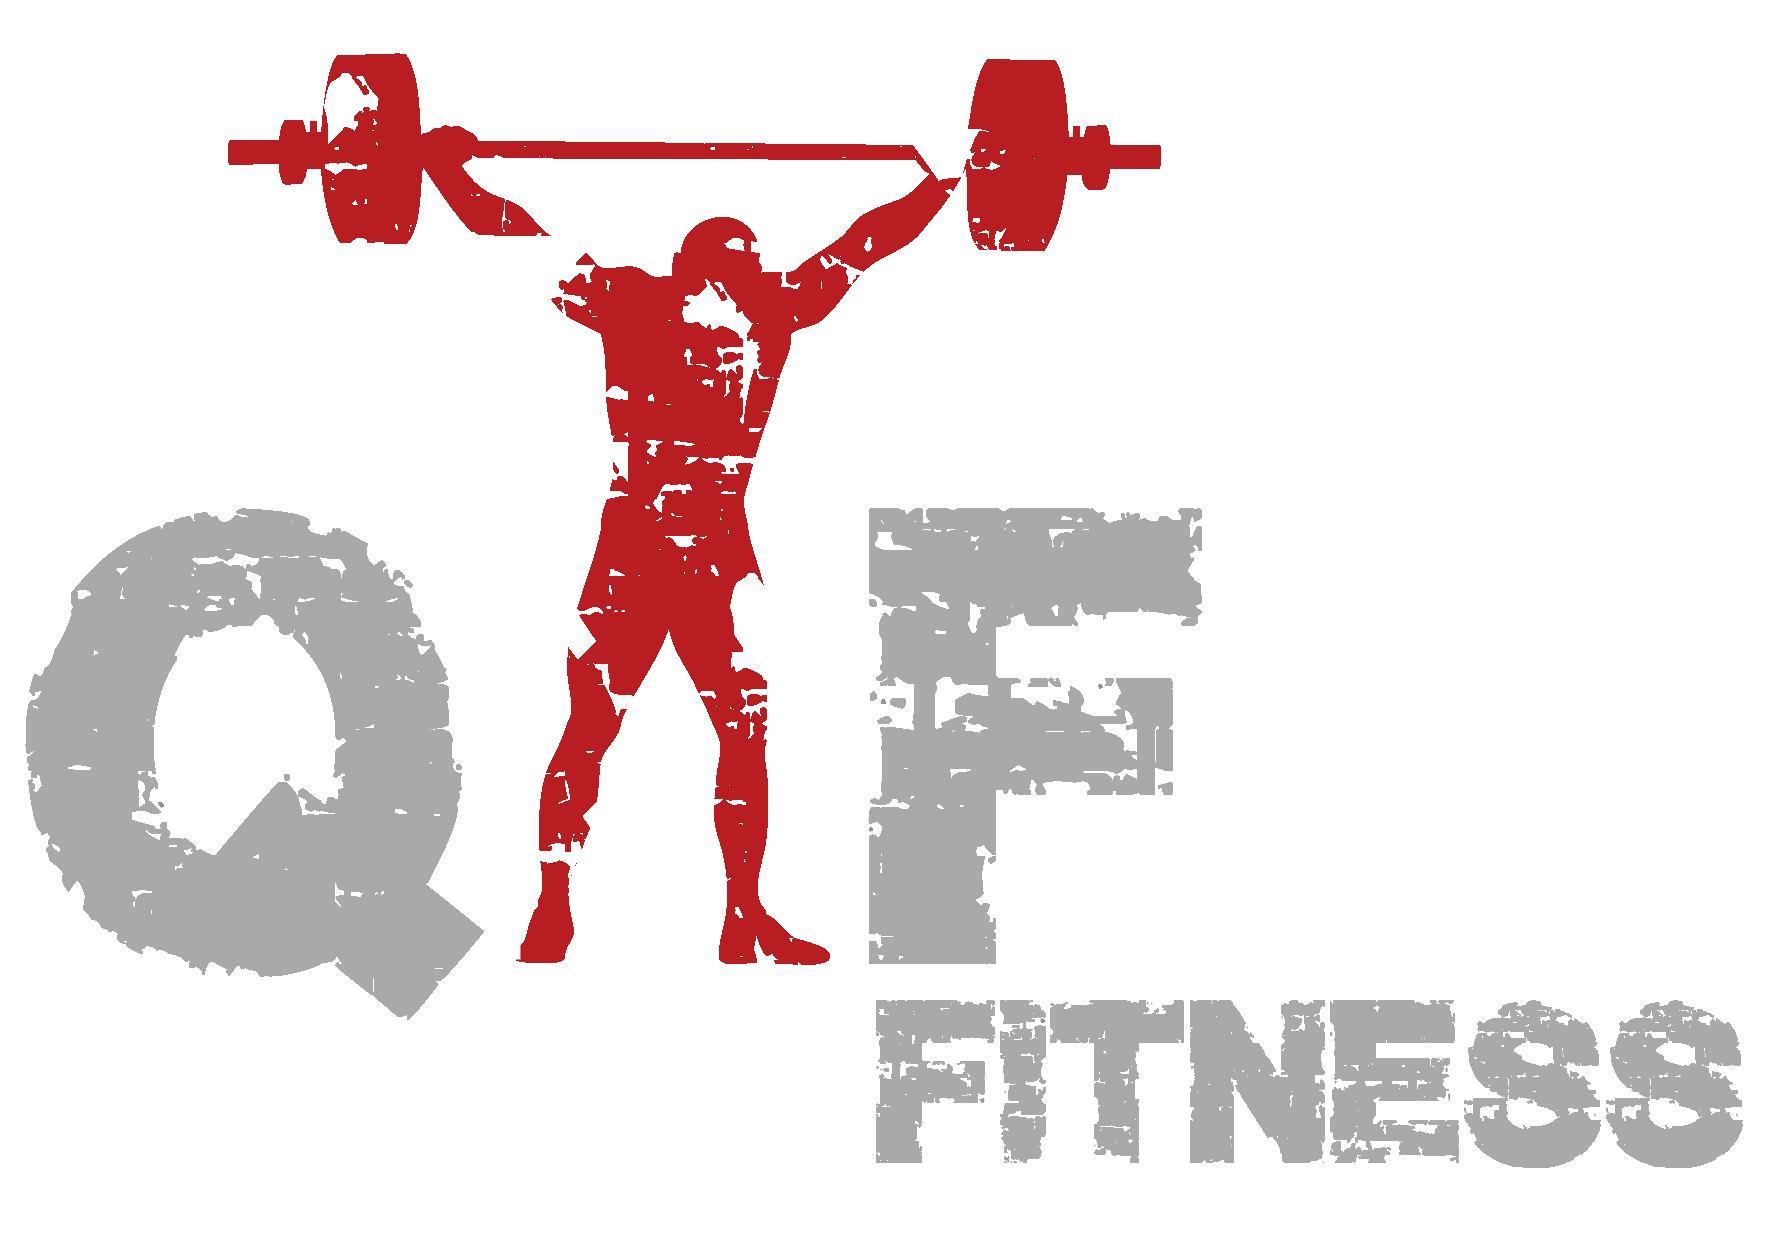 Weight clipart fitness freak. Bio qf personal training